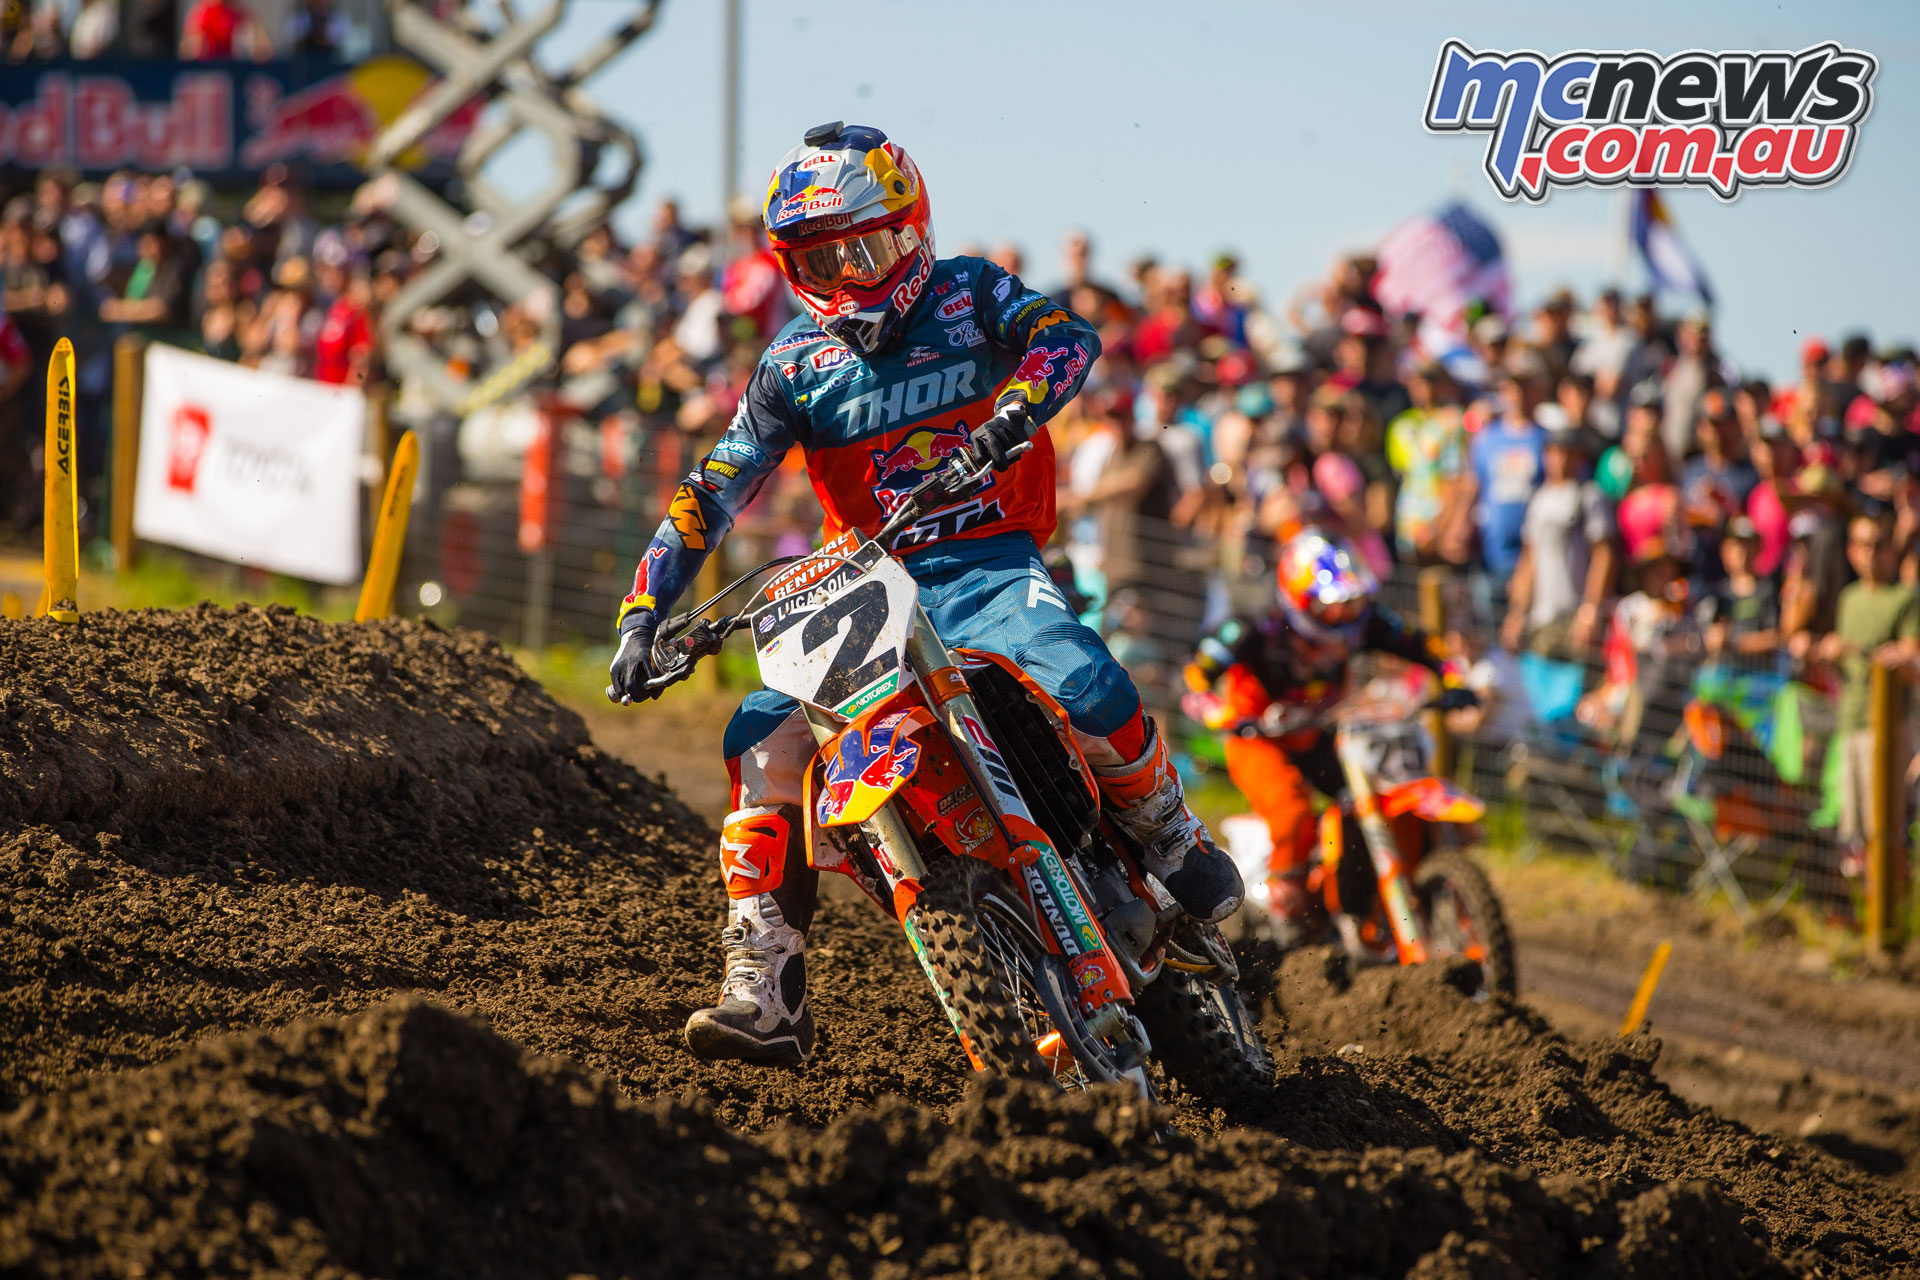 AMA MX Rnd Thunder Valley Webb JK MX Lakewood